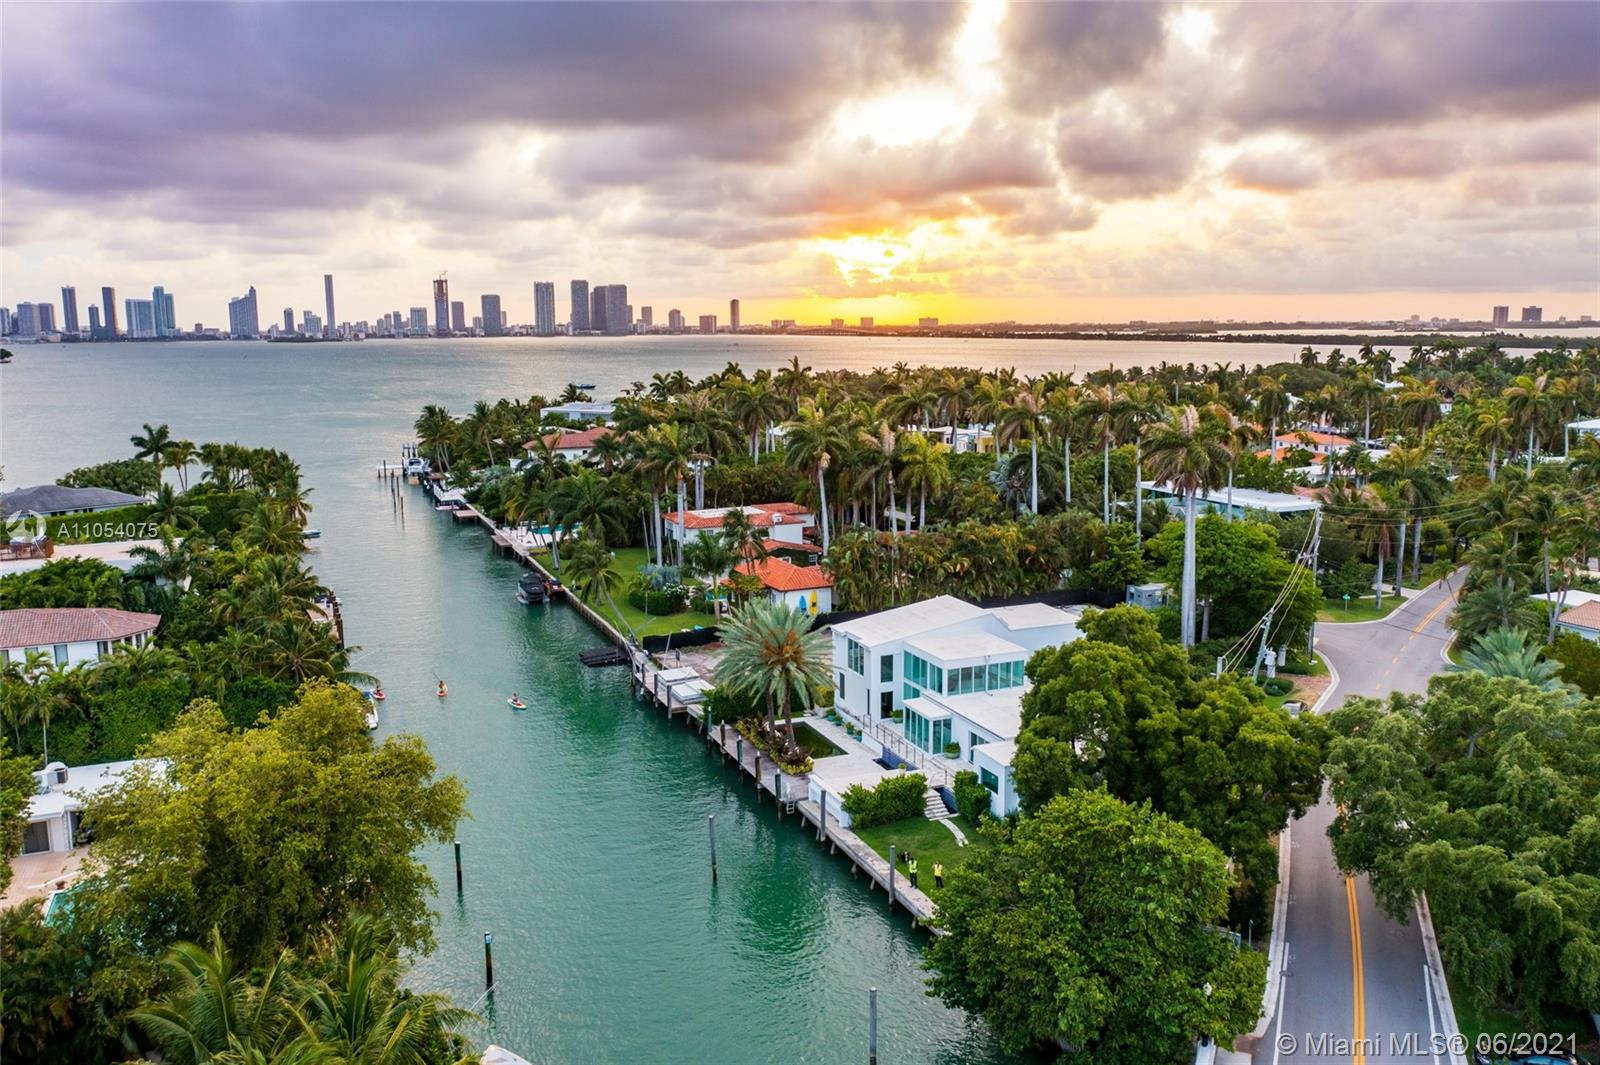 170 ft of private waterfront w/ direct access to open Biscayne Bay. Oversized 14,875 Ft lot rarely available, with mature Palm Trees & landscaping. Ability to have yacht on private dock & not obstructing views from home rarely possible on a single lot. Contemporary & architecturally significant home is 4,049 Sq Ft. 24 Hr. guard gate on the prestigious Sunset Island III. Walking distance to the Sunset Harbour neighborhood; the best of Miami Beach just outside the gate. Easy to show by land or water.